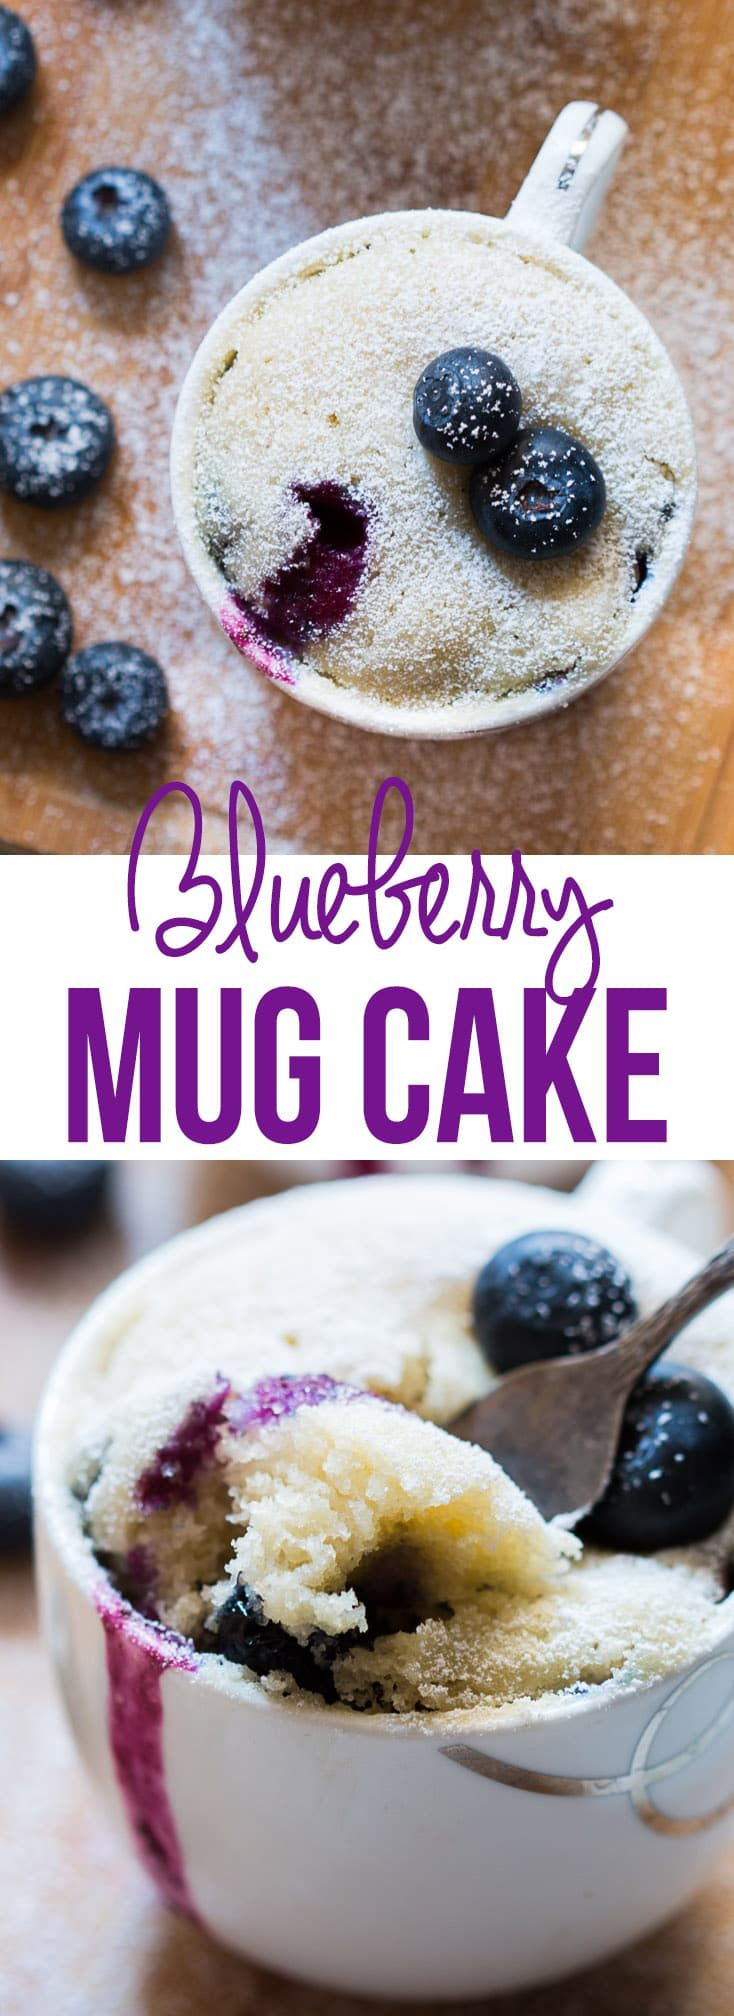 Best 25 Vegan mug cakes ideas on Pinterest Healthy mug cakes 1